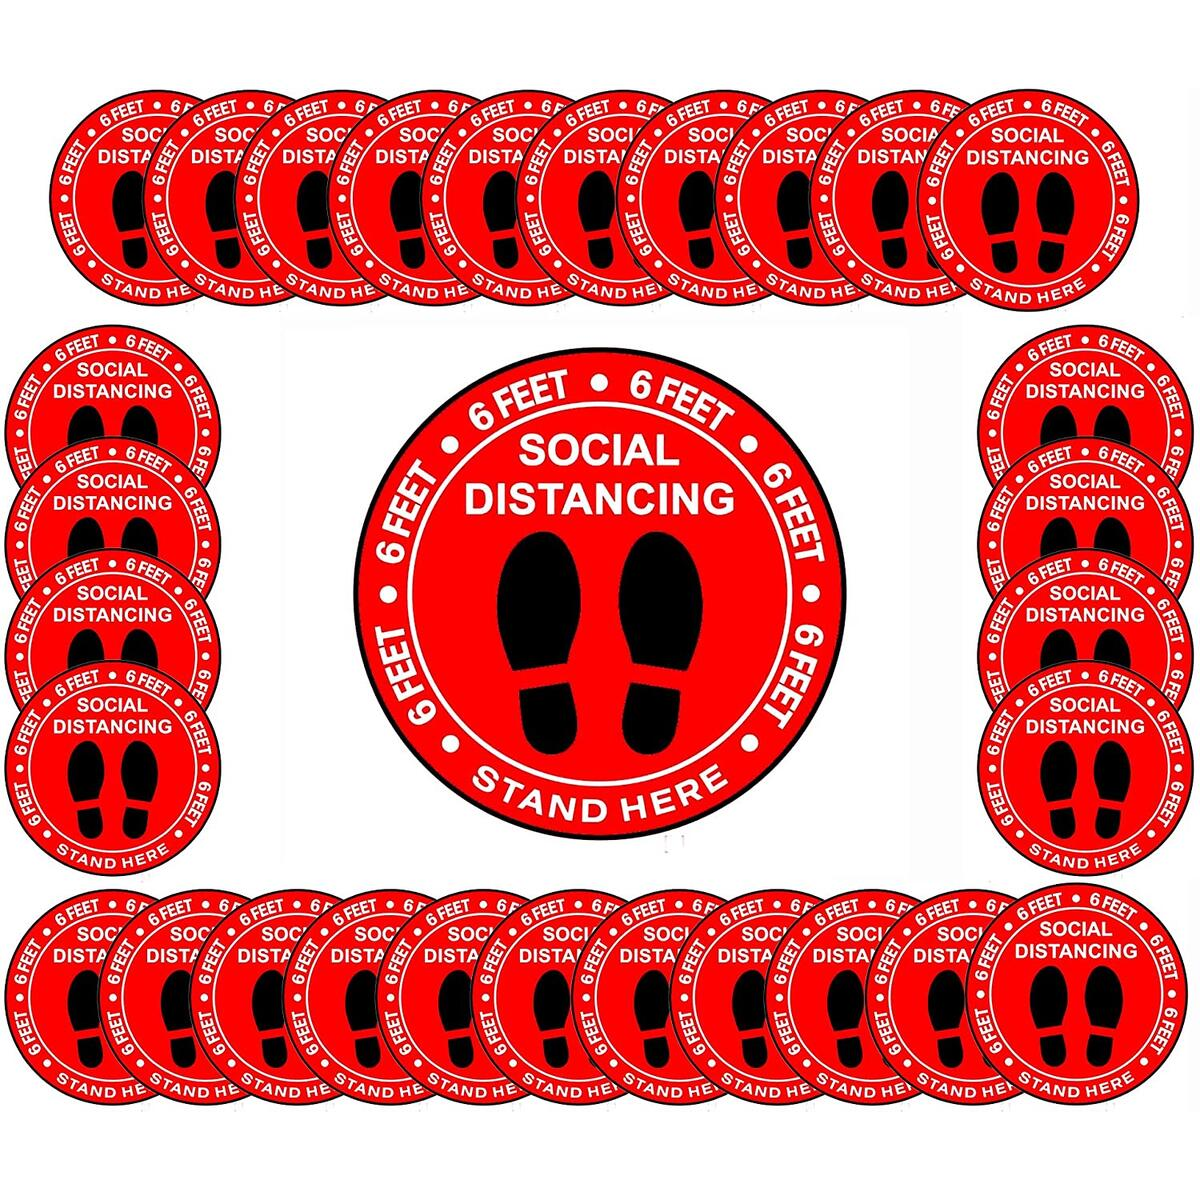 Social Distancing Floor Decoration Decals - 30 Pack 8 Inch Waterproof Safe Distance Stickers, Tear-Resistant Vinyl Crowd Control Signs, Red Floor Markers for School, Supermarket, Store, Business, Work